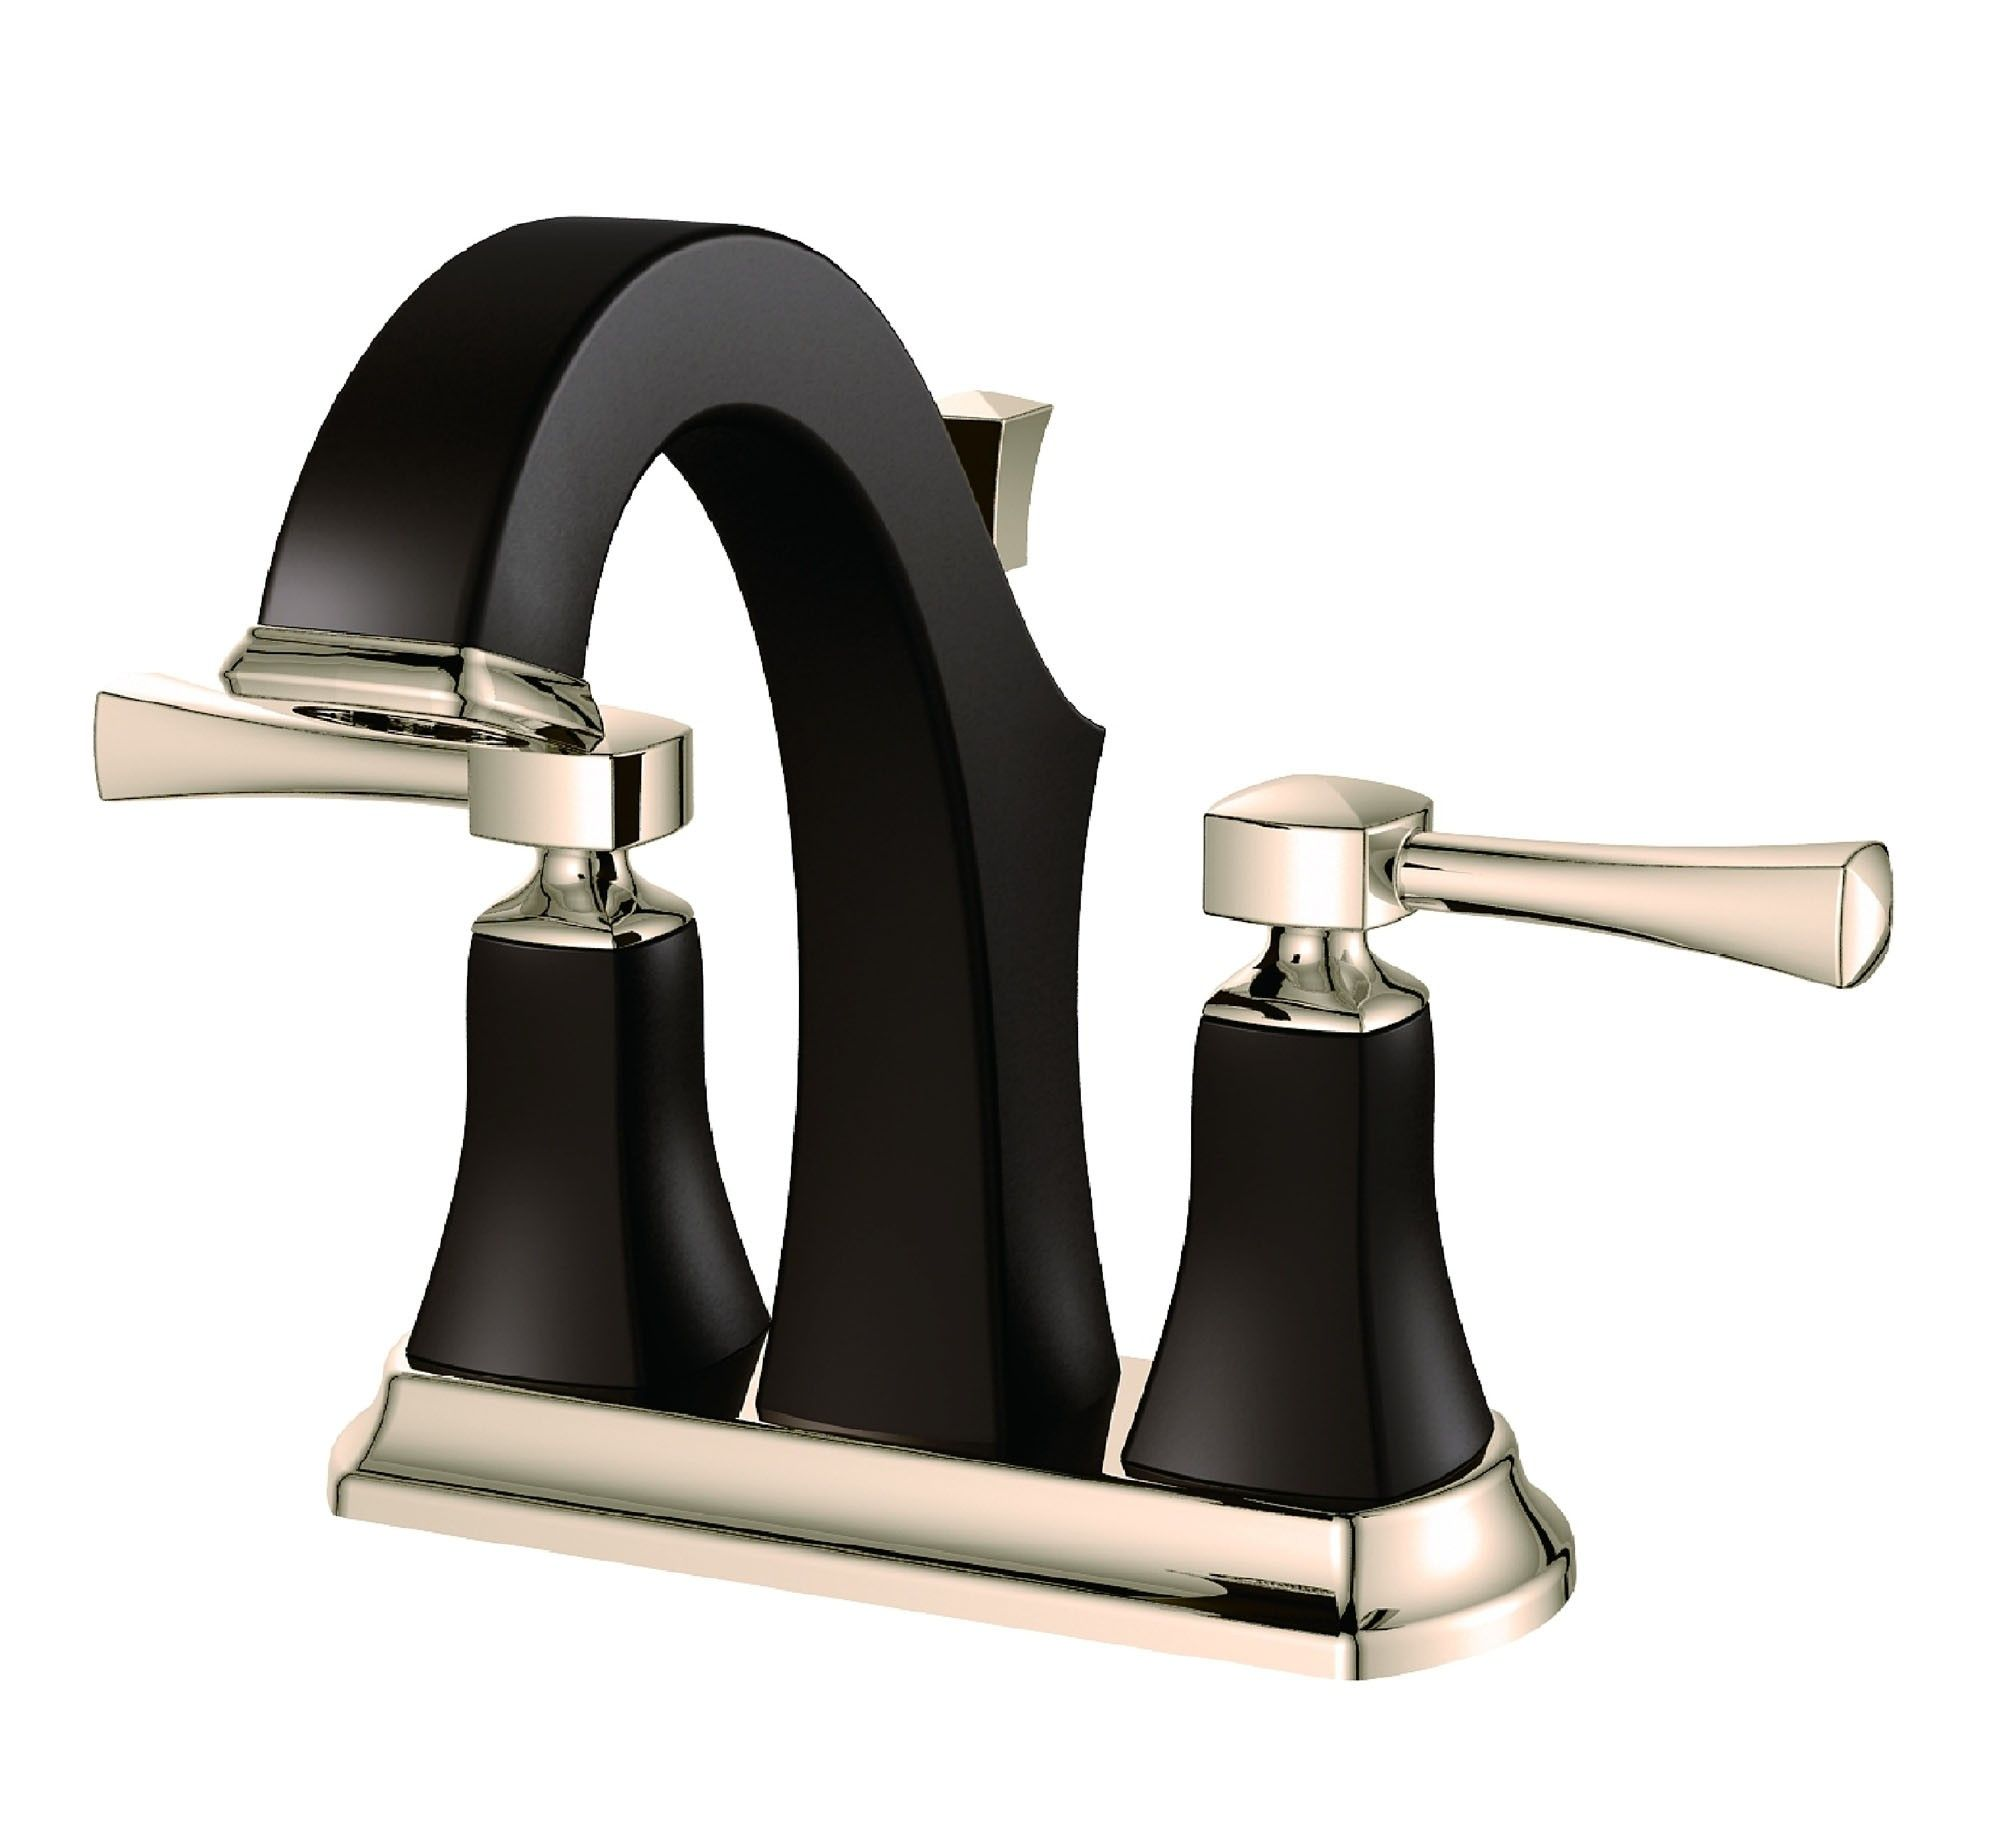 Spring 18471MV5HA Two Handle Lavatory Faucet in Chocolate Bronze and ...